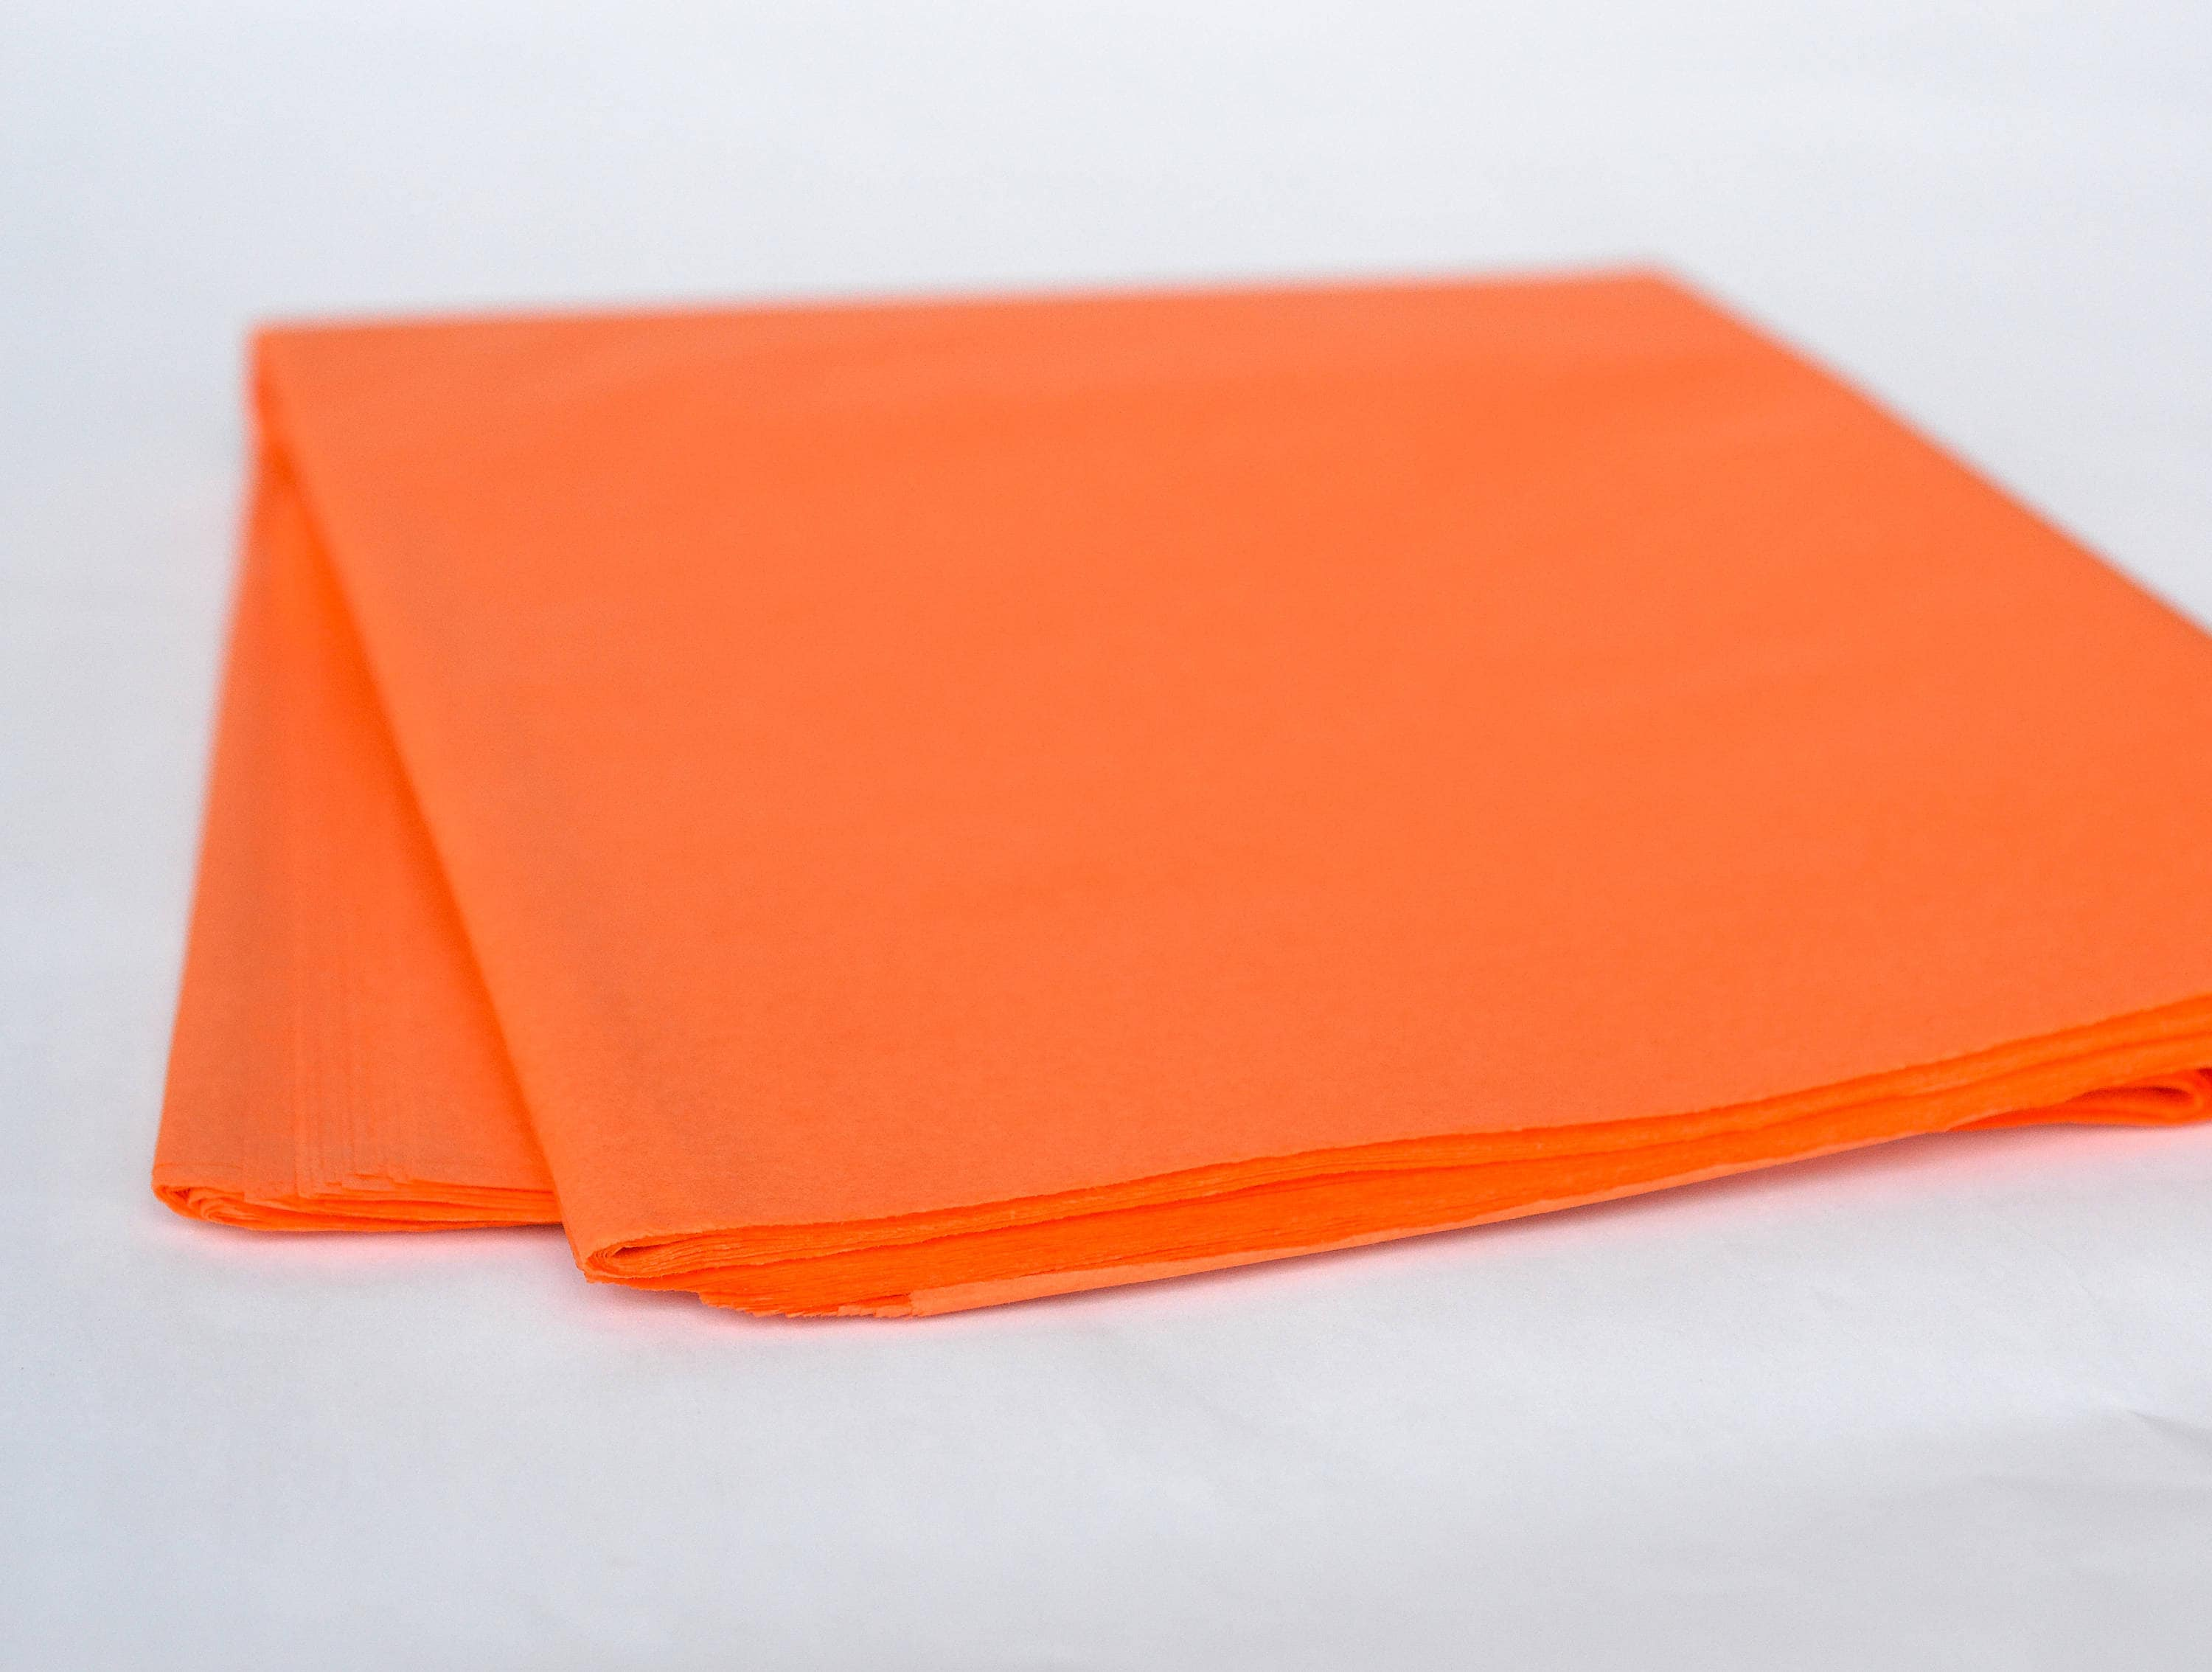 orange tissue paper Orange color tissue paper 15x20 sheet - 480 sheets per pack color flo tissue paper is made from 100% post industrial recycled fibers green way ® eco-friendly packaging made in the usa.